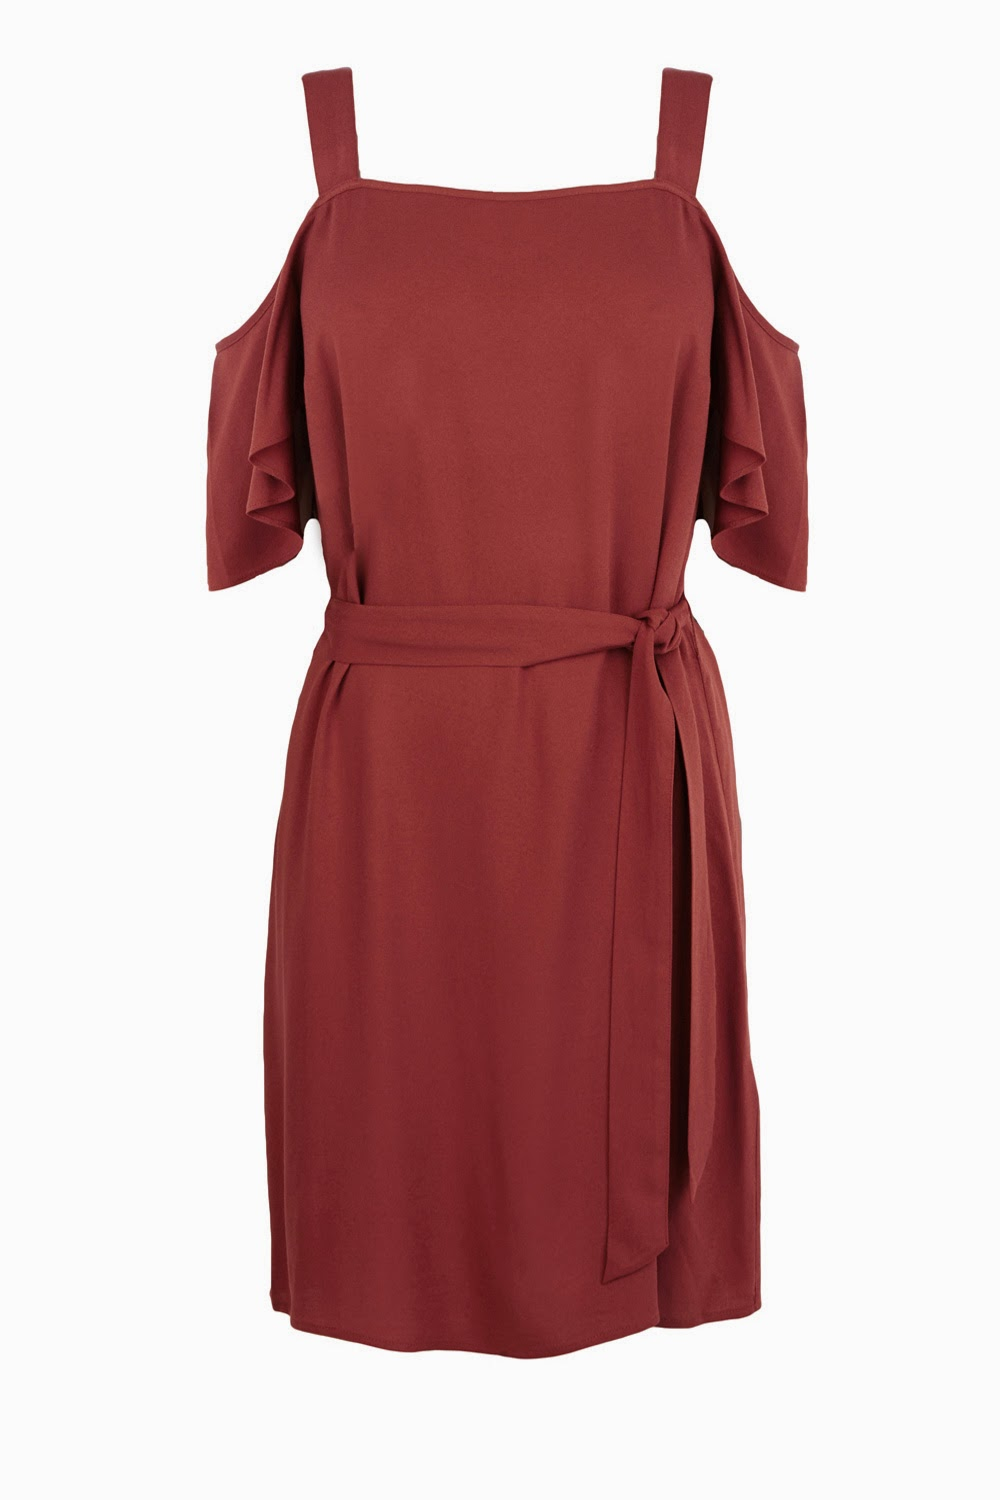 warehouse strap shoulder rust dress,